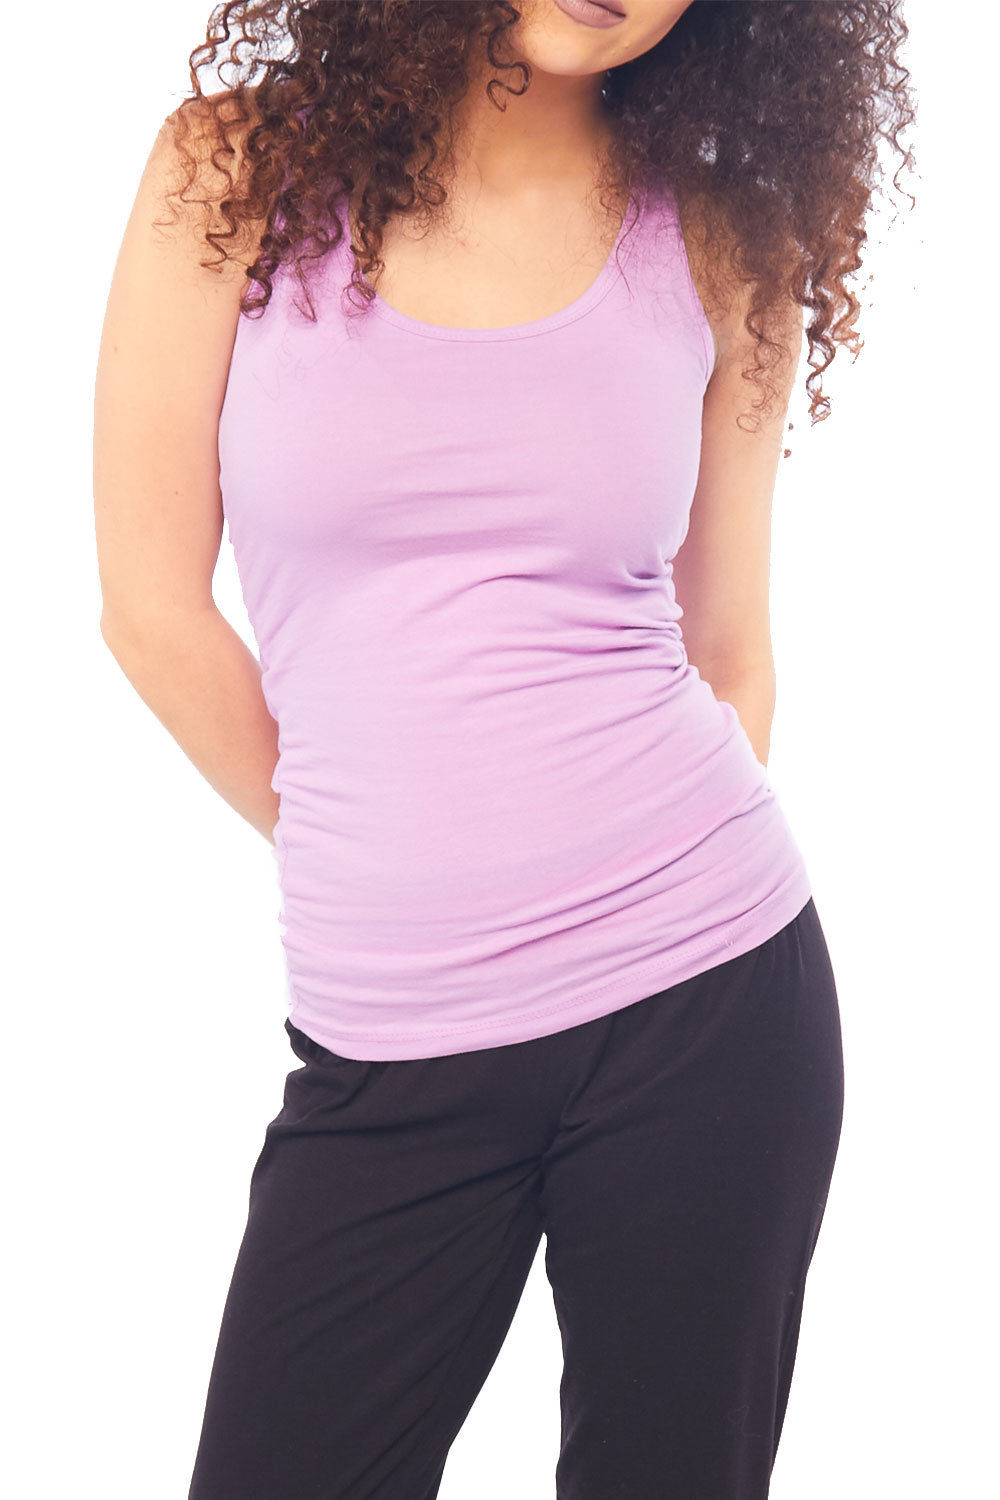 Womens Beta Racer Back Slim Fitted Active Deep Round Neck Tank Top RT1777-S-Lavender